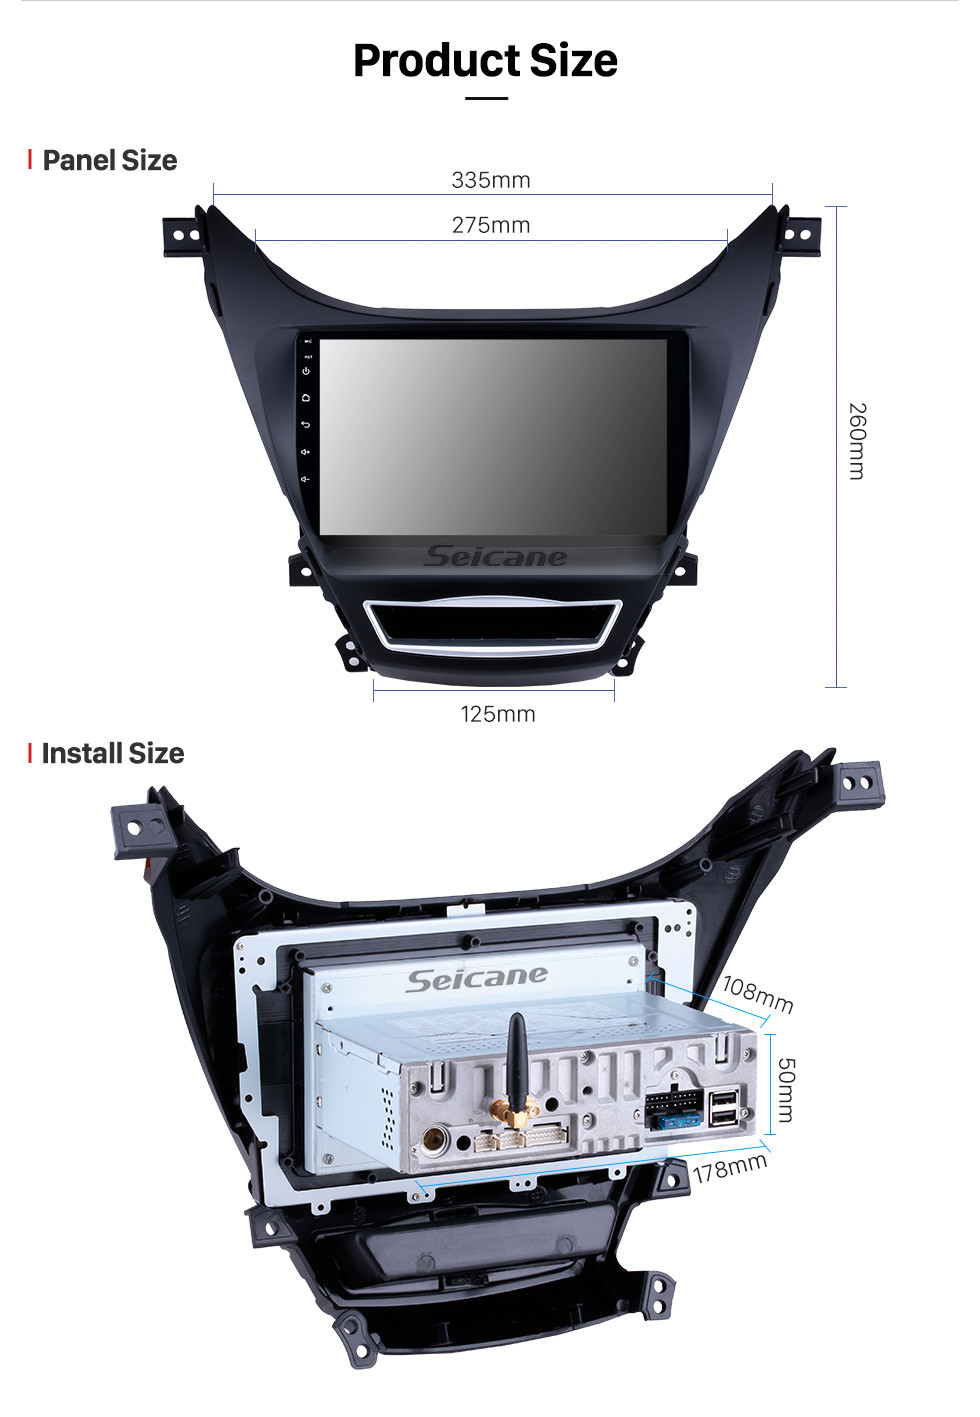 Seicane OEM 9 inch 2012 2013 Hyundai Elantra Android 9.0 Radio GPS  navigation system with HD 1024*600 touch screen Bluetooth OBD2 DVR Rearview camera TV 1080P Video 3G WIFI DVD player Steering Wheel Control USB Mirror link